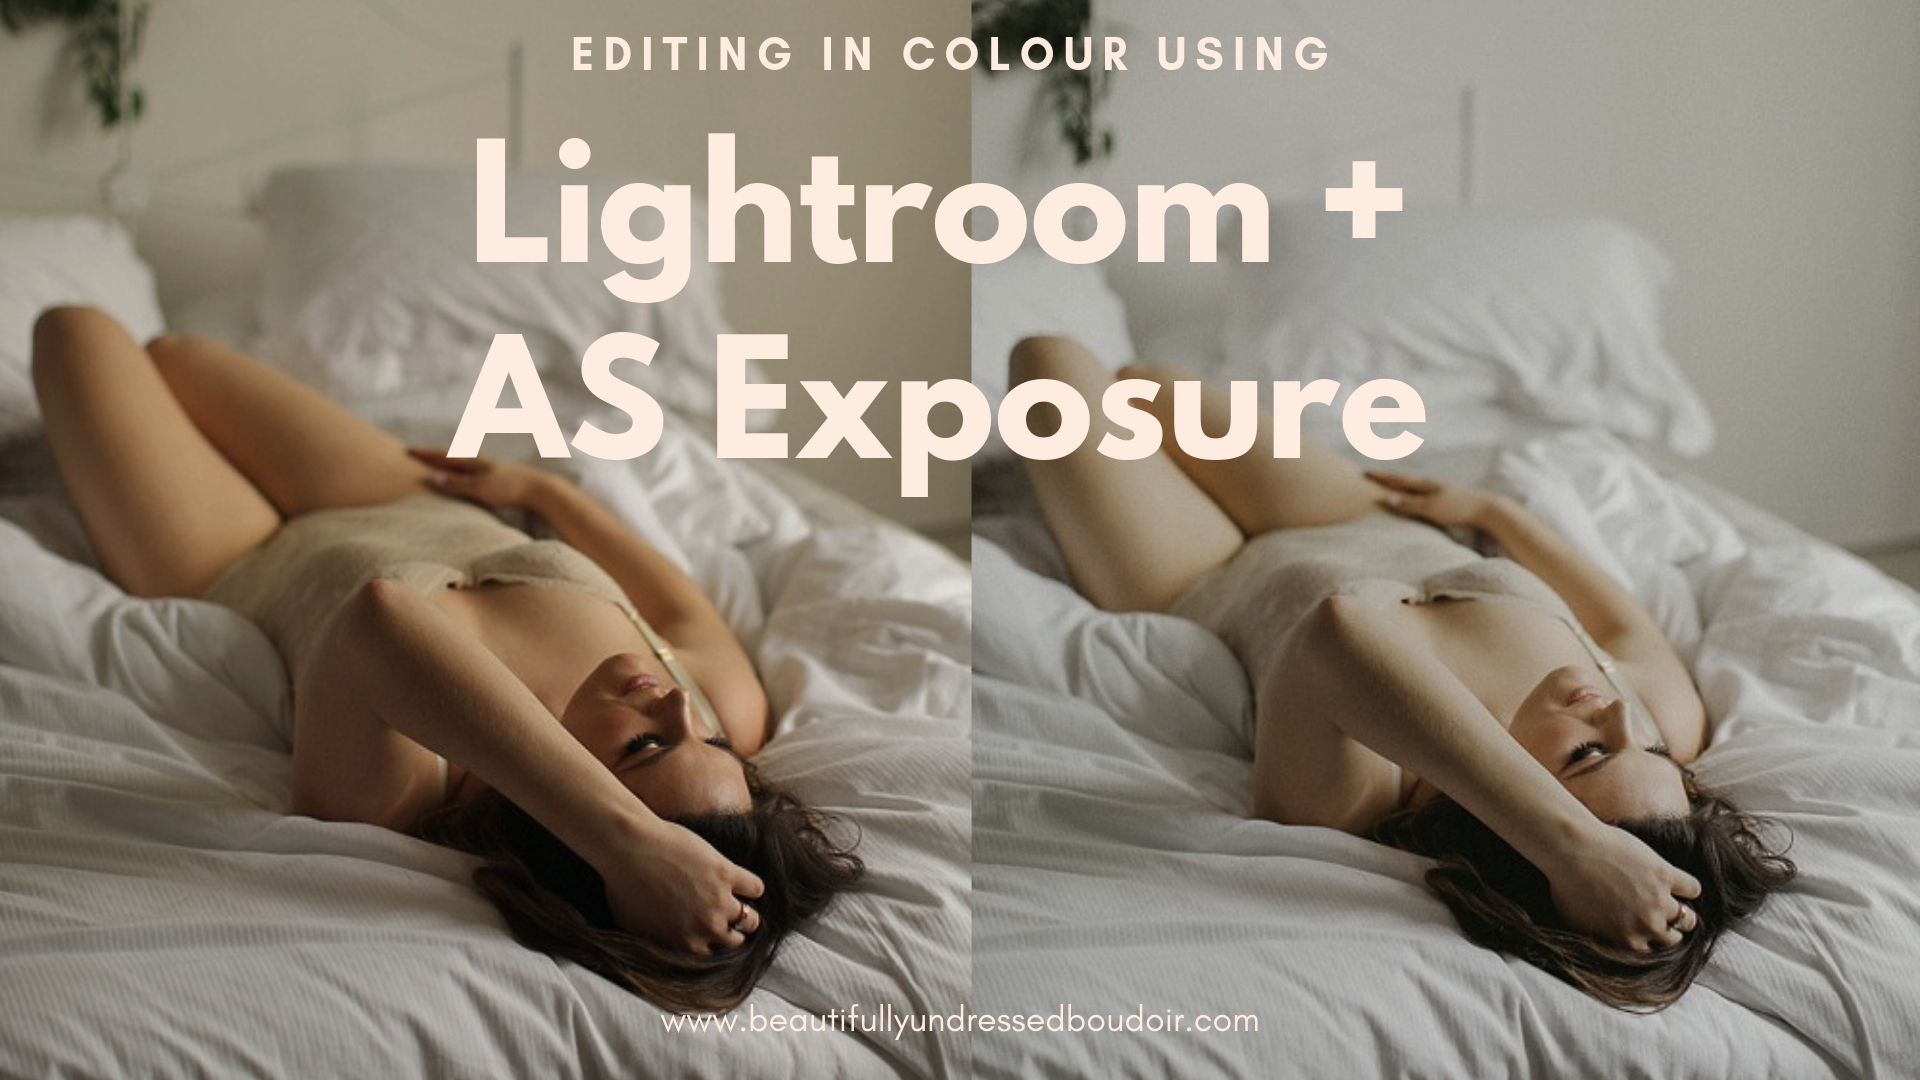 Boudoir photography lightroom tutorial.jpg